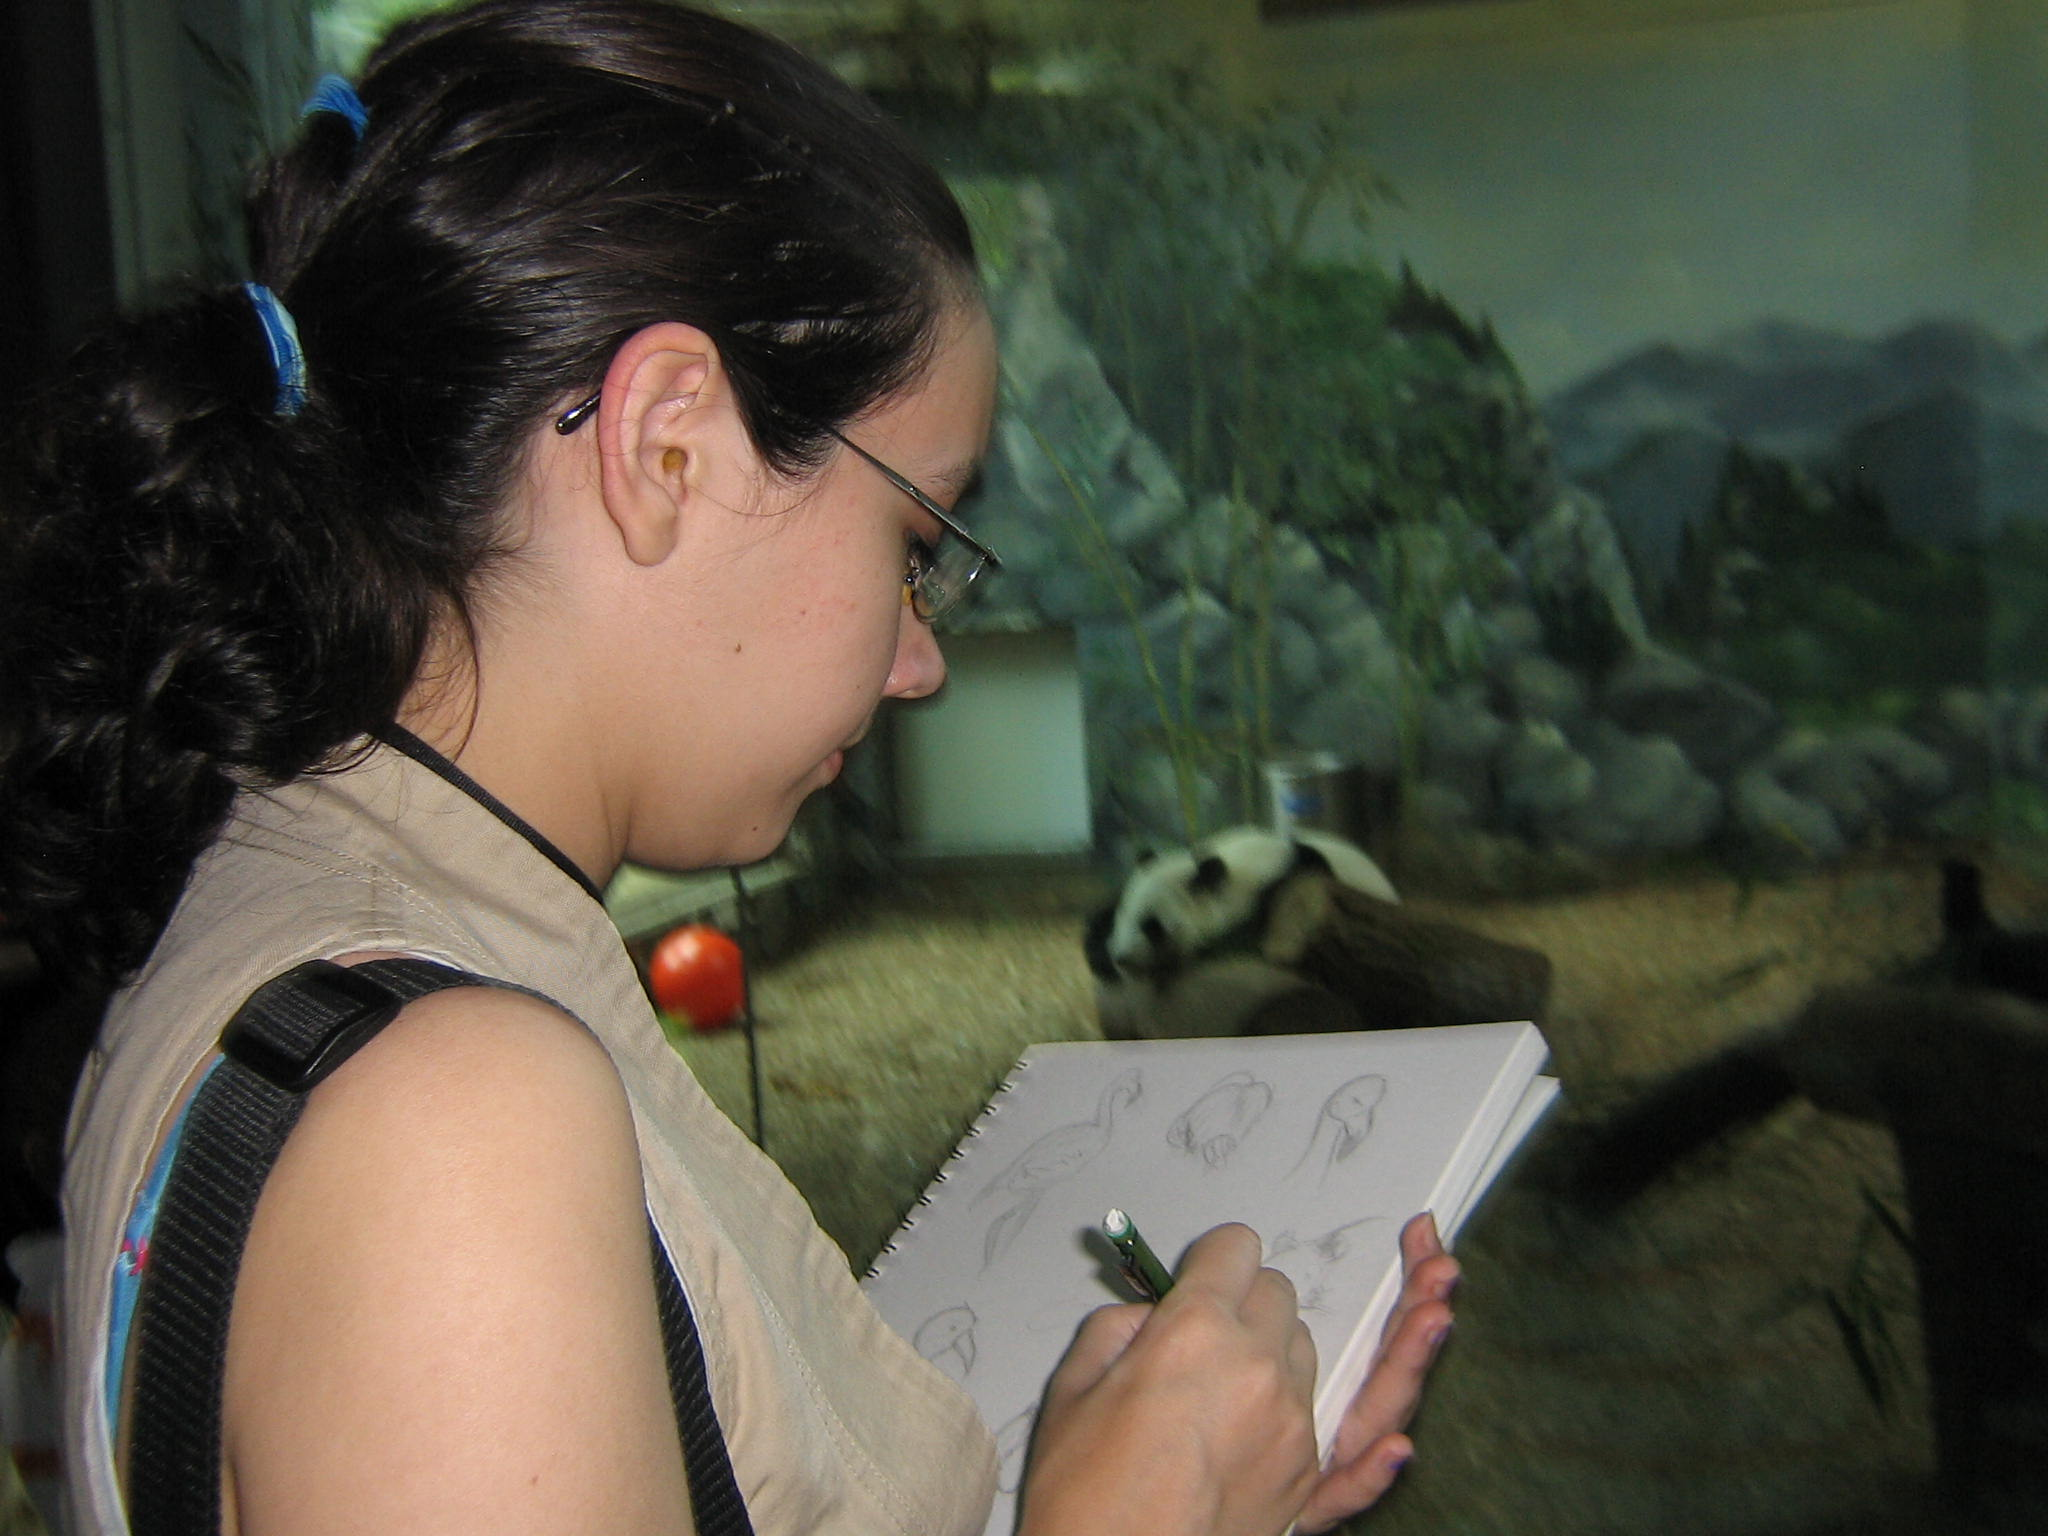 Bob's daughter, Sarah, focuses in sketching flamingos at the zoo